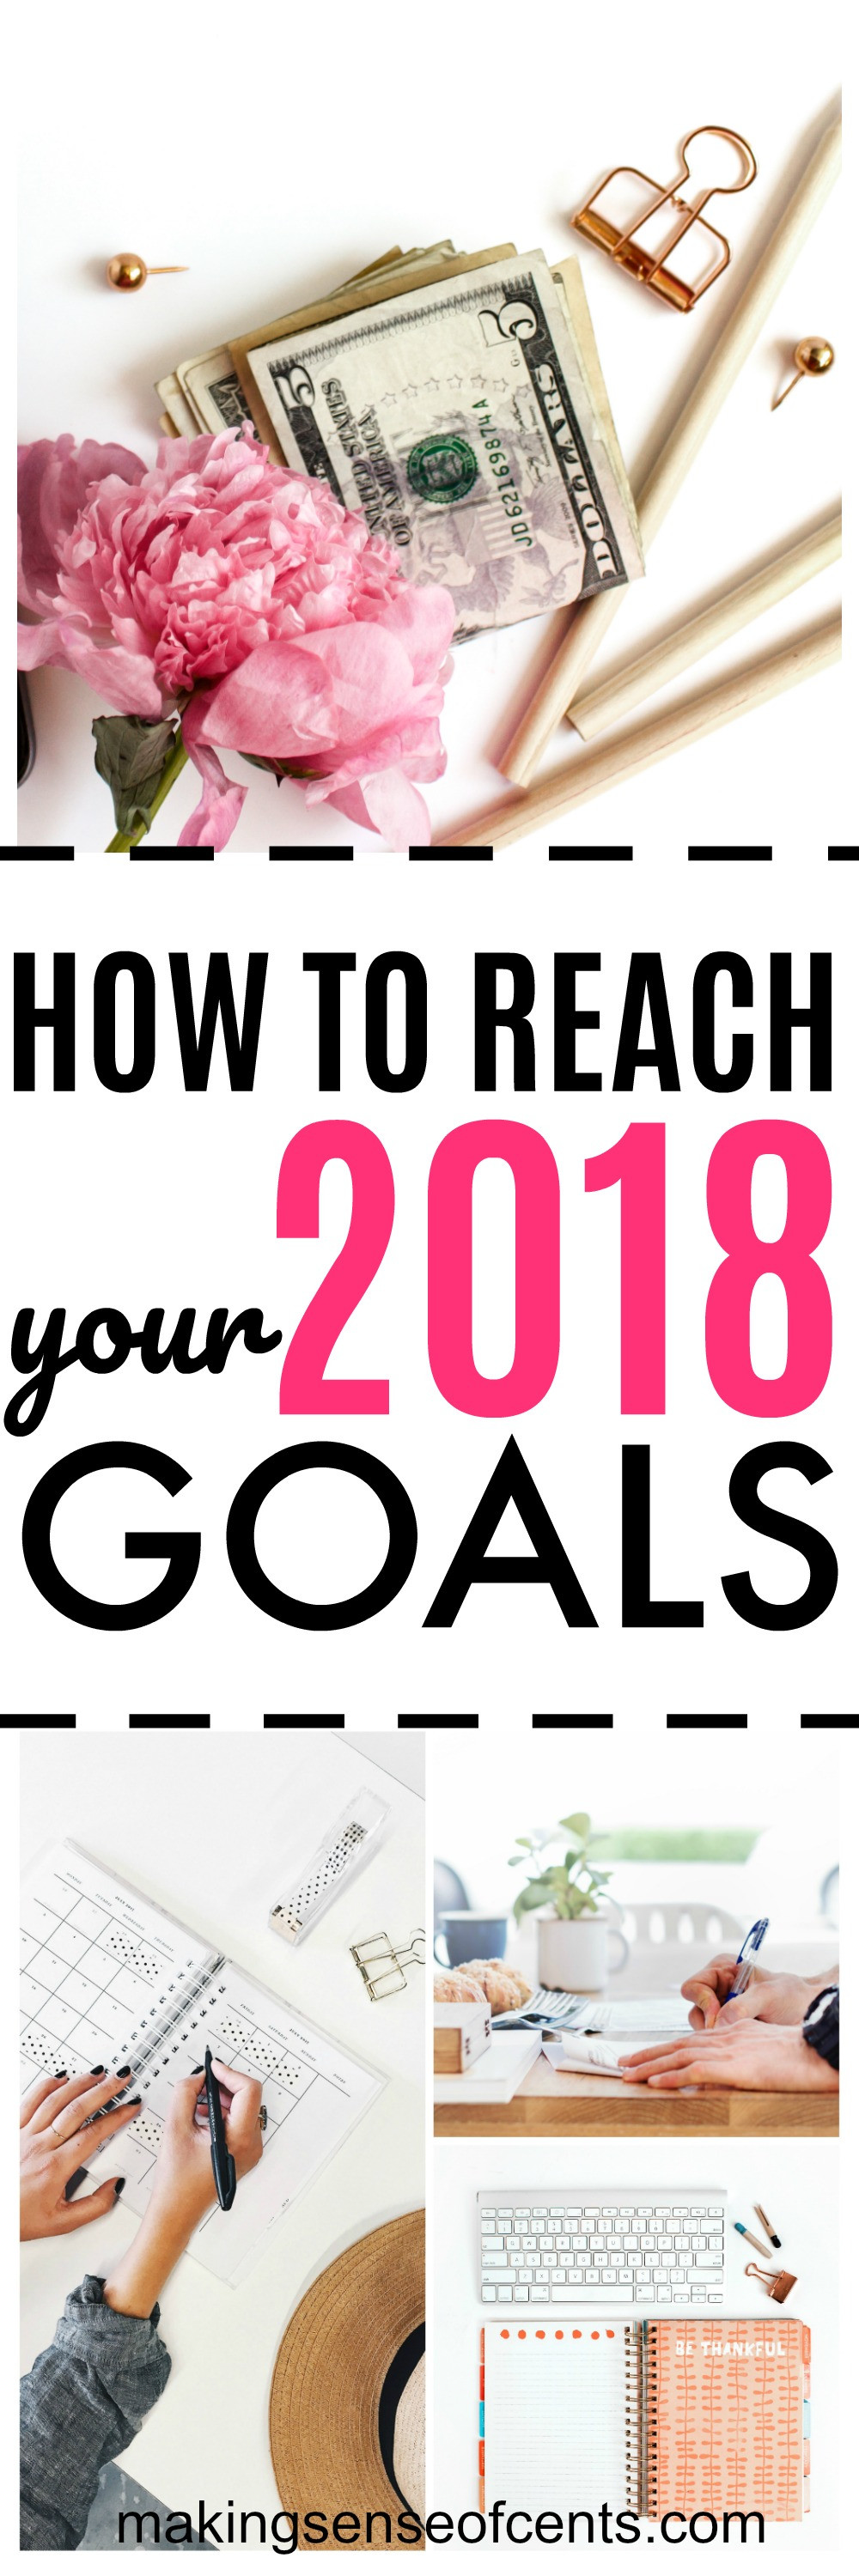 Find out how to reach your 2018 goals #2018 #goals #2018goals